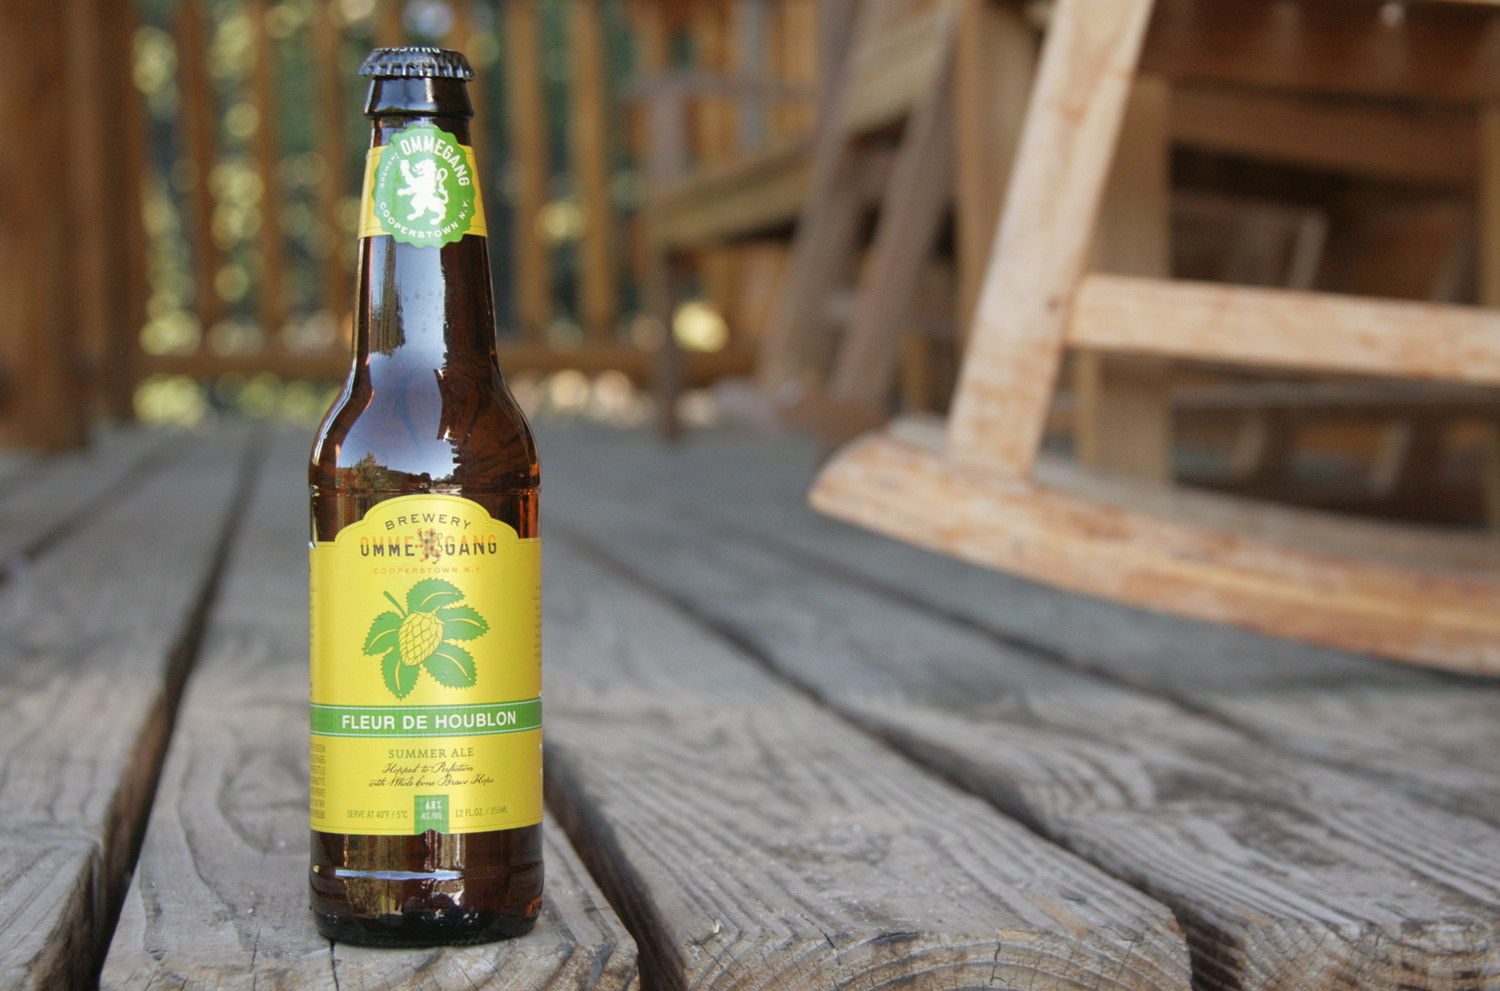 Ommegang Fleur De Houblon is a great summer beer for sipping.